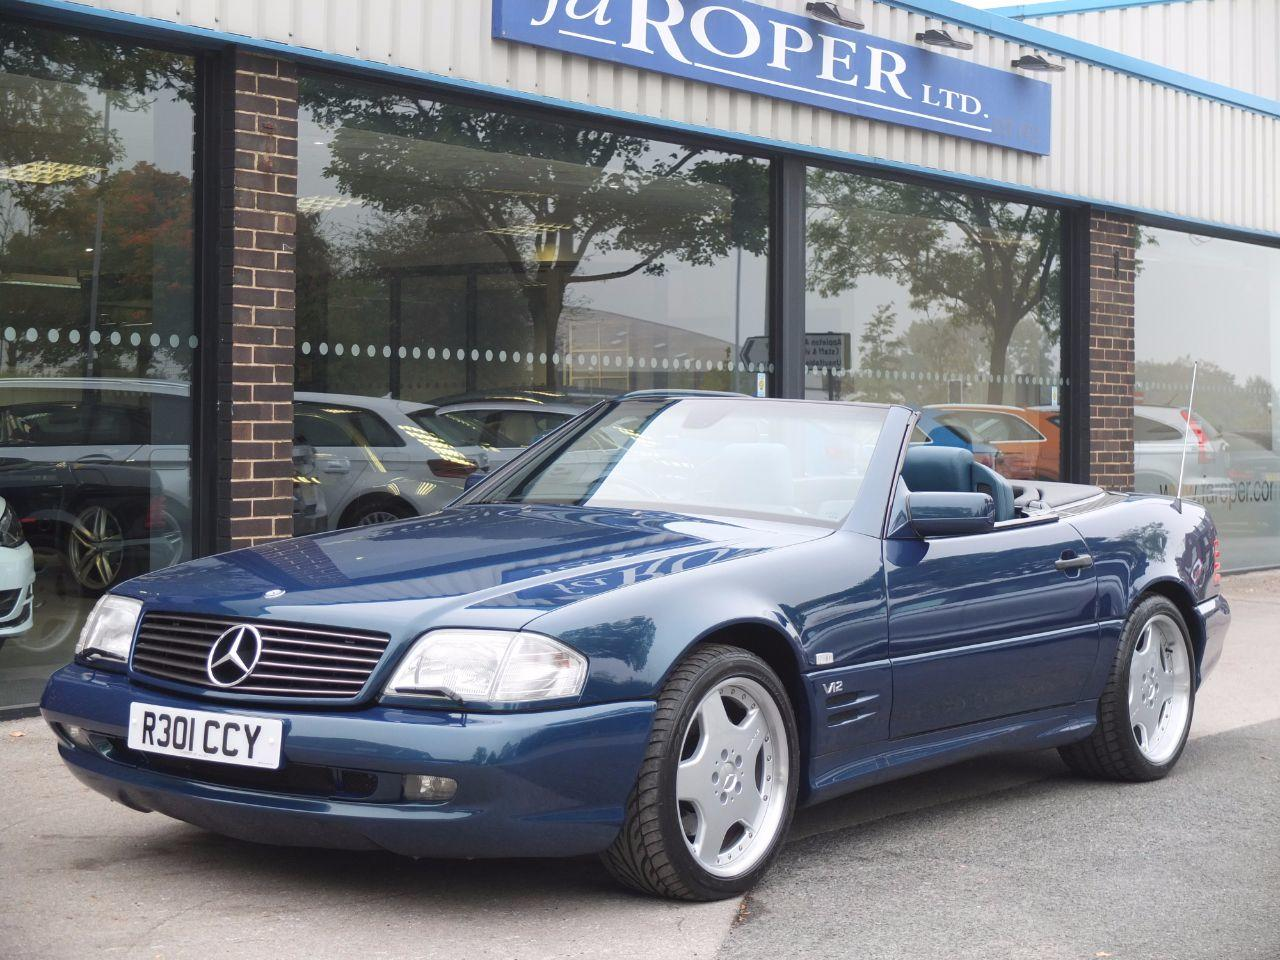 Mercedes-Benz 600 6.0 SL 600 AUTO Convertible Petrol Designo Vario Paint FinishMercedes-Benz 600 6.0 SL 600 AUTO Convertible Petrol Designo Vario Paint Finish at fa Roper Ltd Bradford